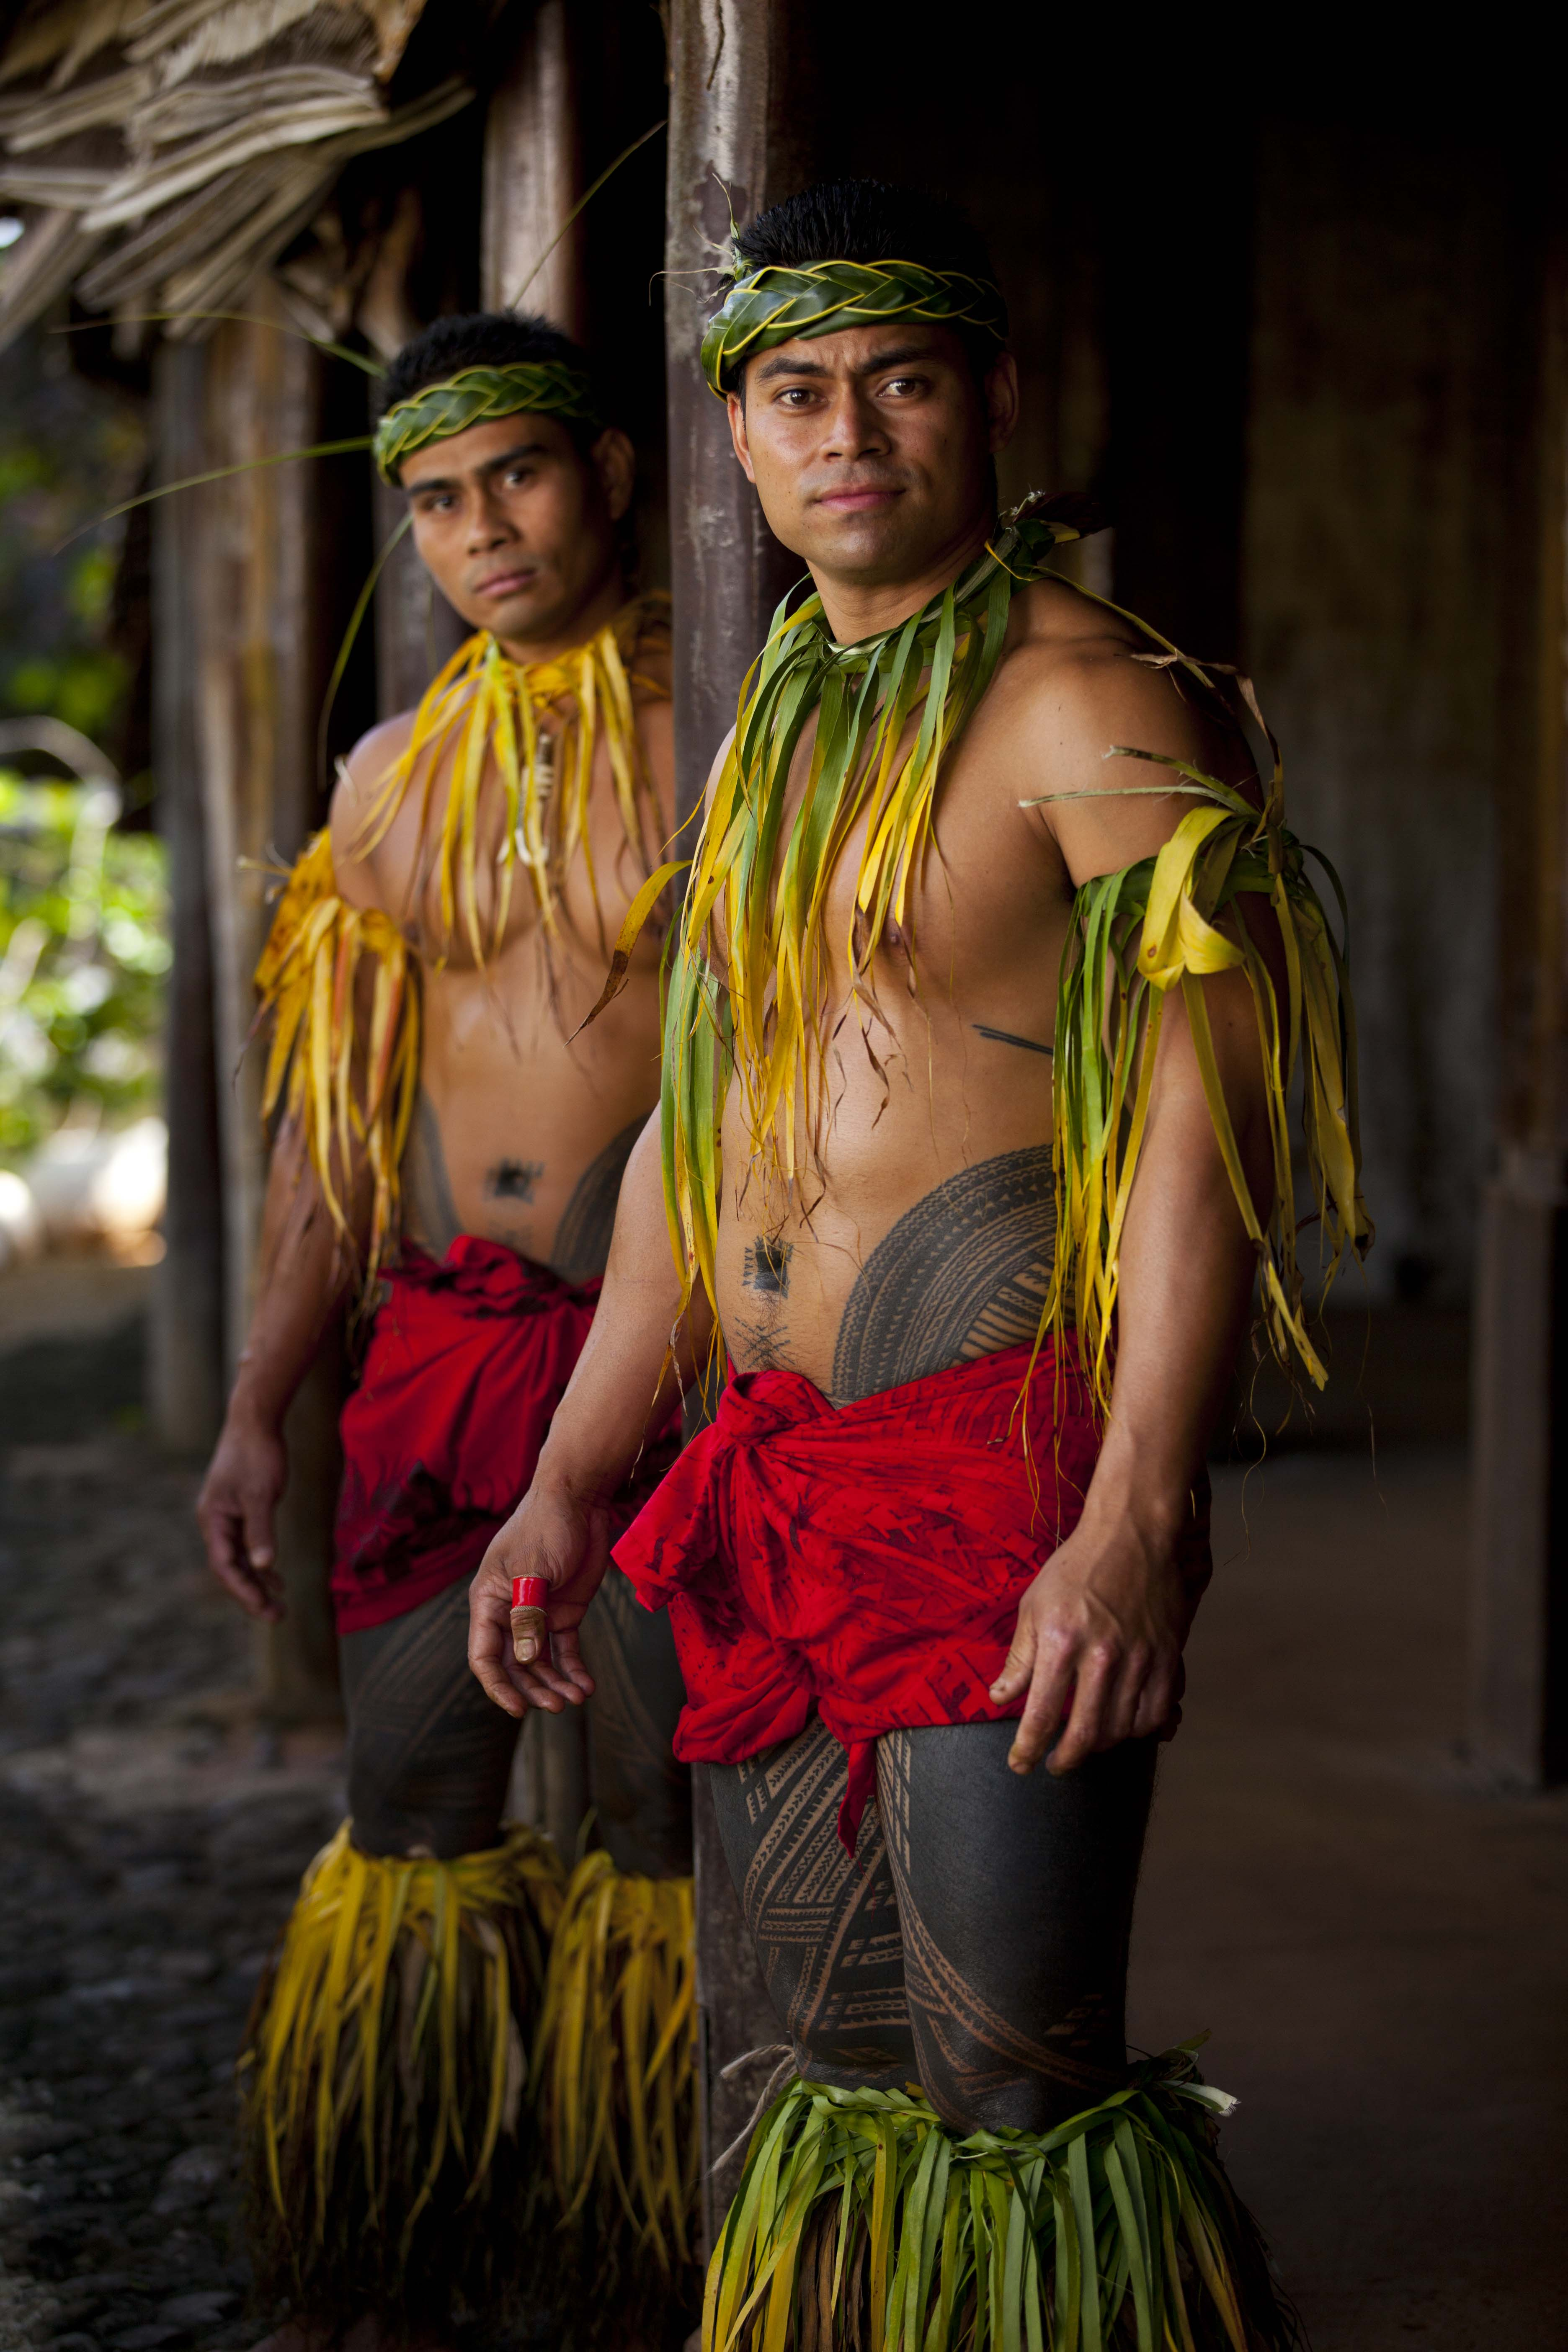 Samoan Family Traditions: The Sacred Duty of Brothers in Samoa